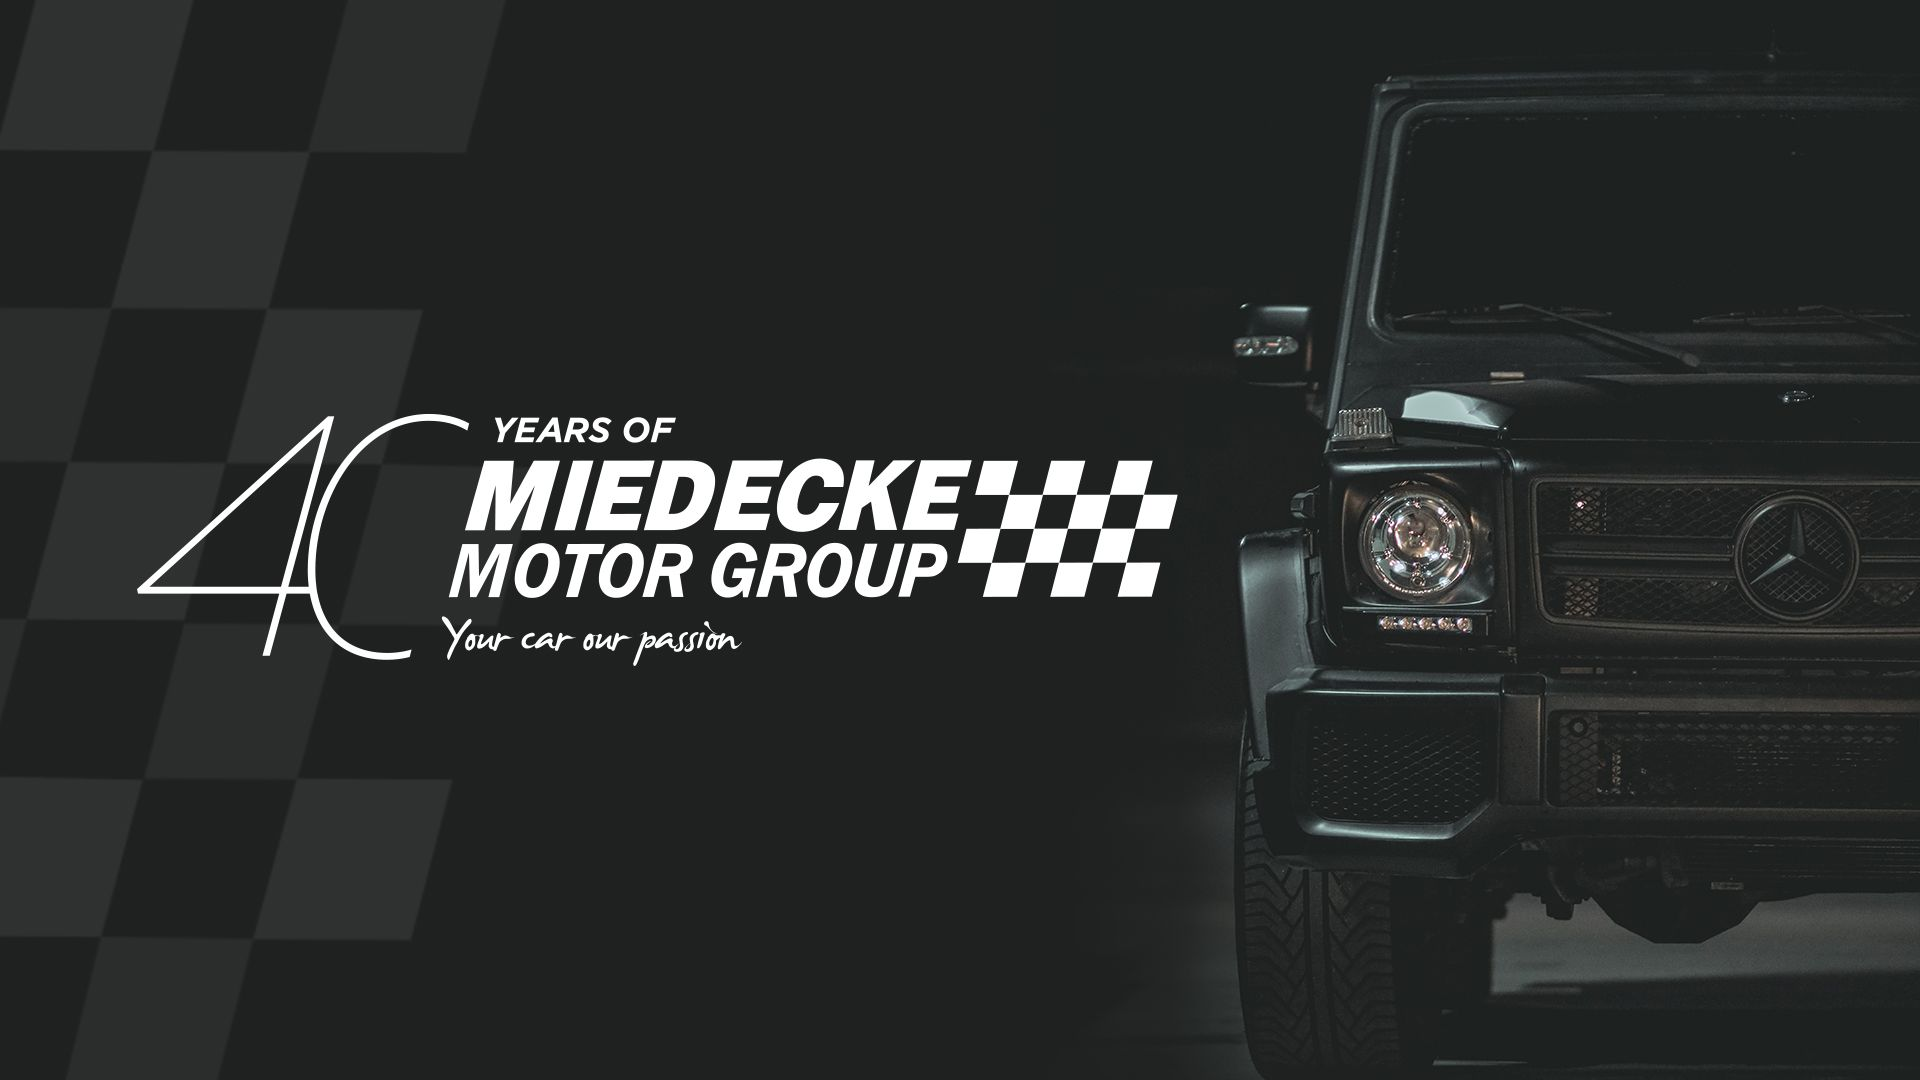 Graphic Design Services for Miedecke